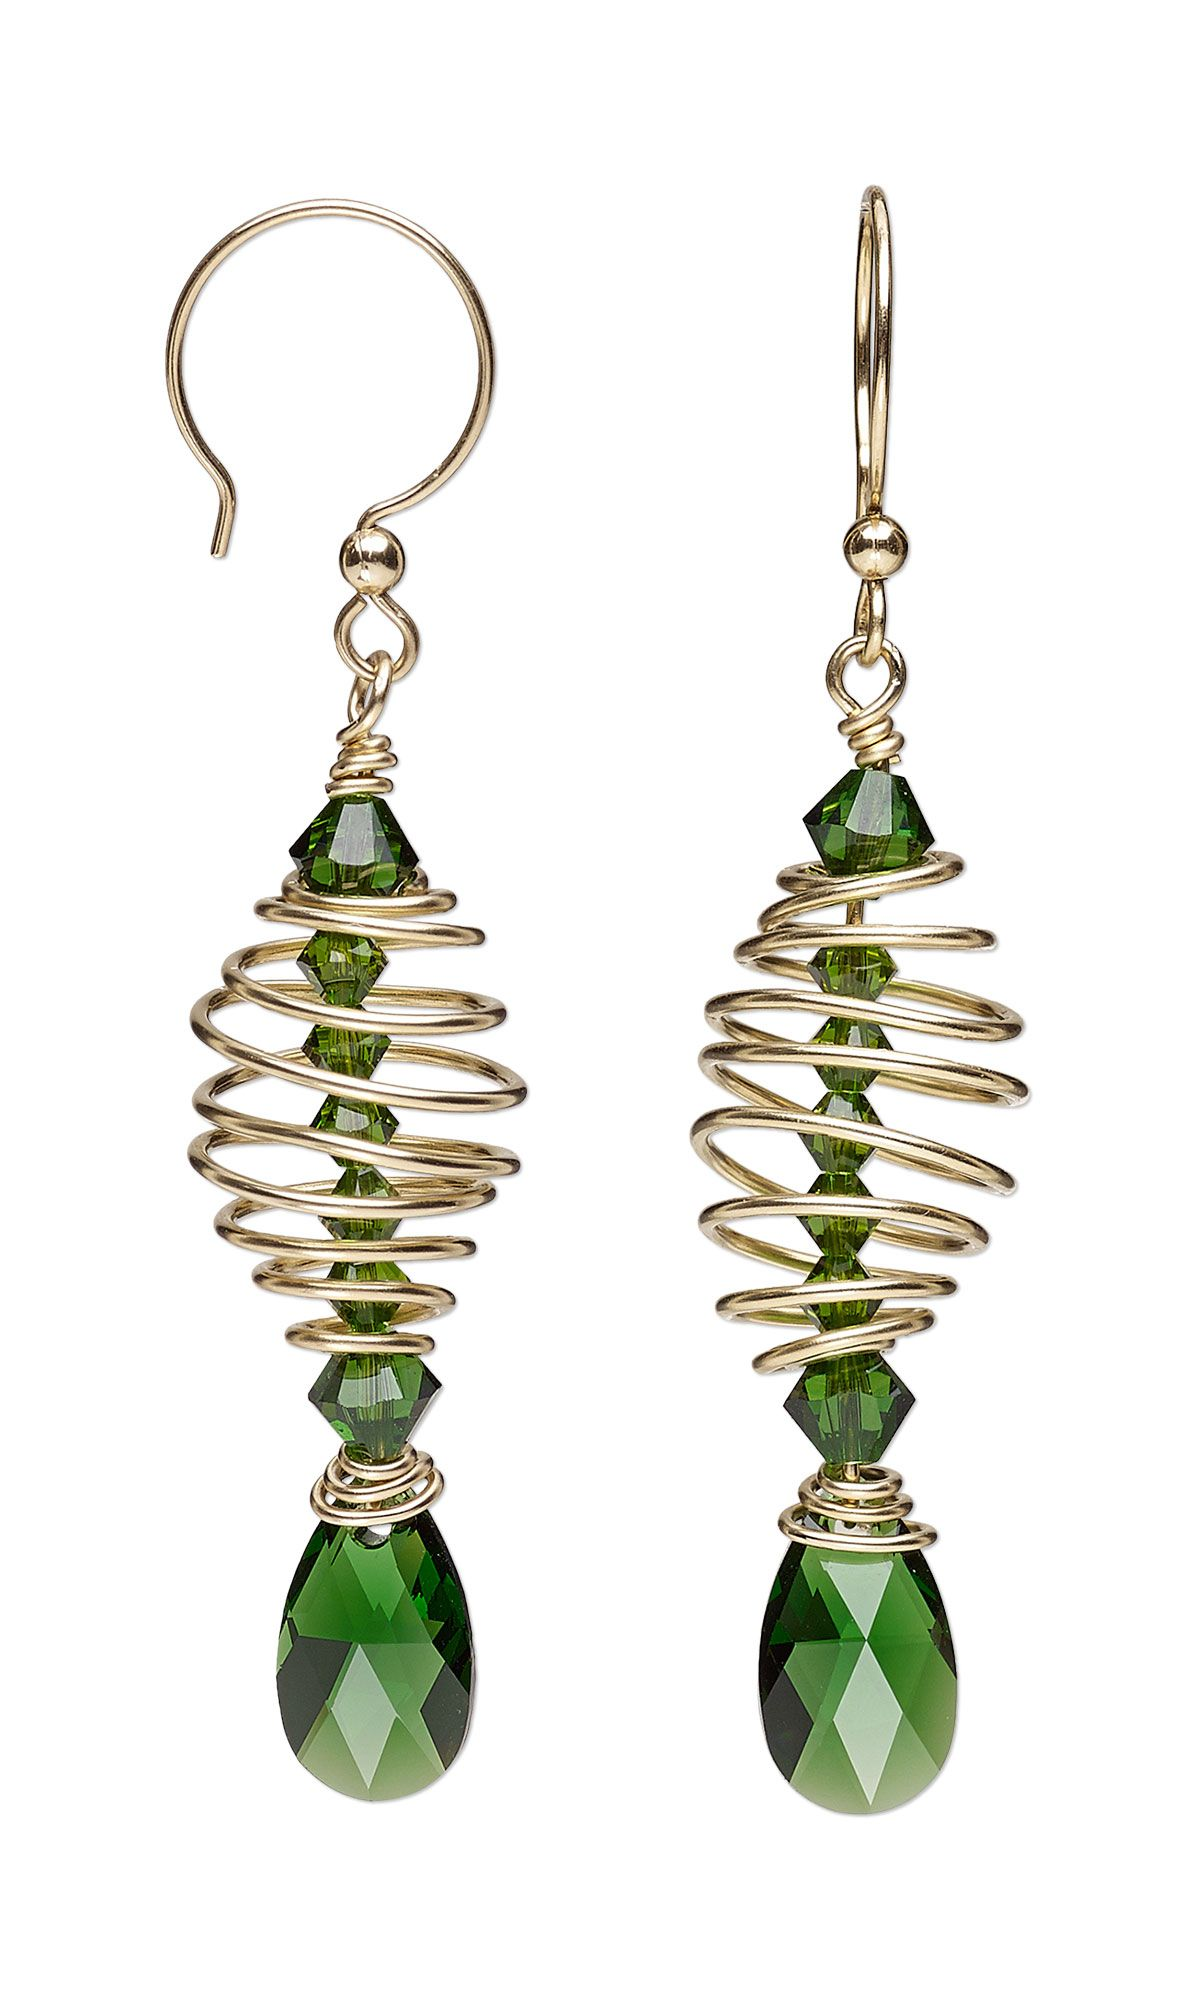 Jewelry Design - Earrings with Swarovski Crystal and Wirework - Fire ...